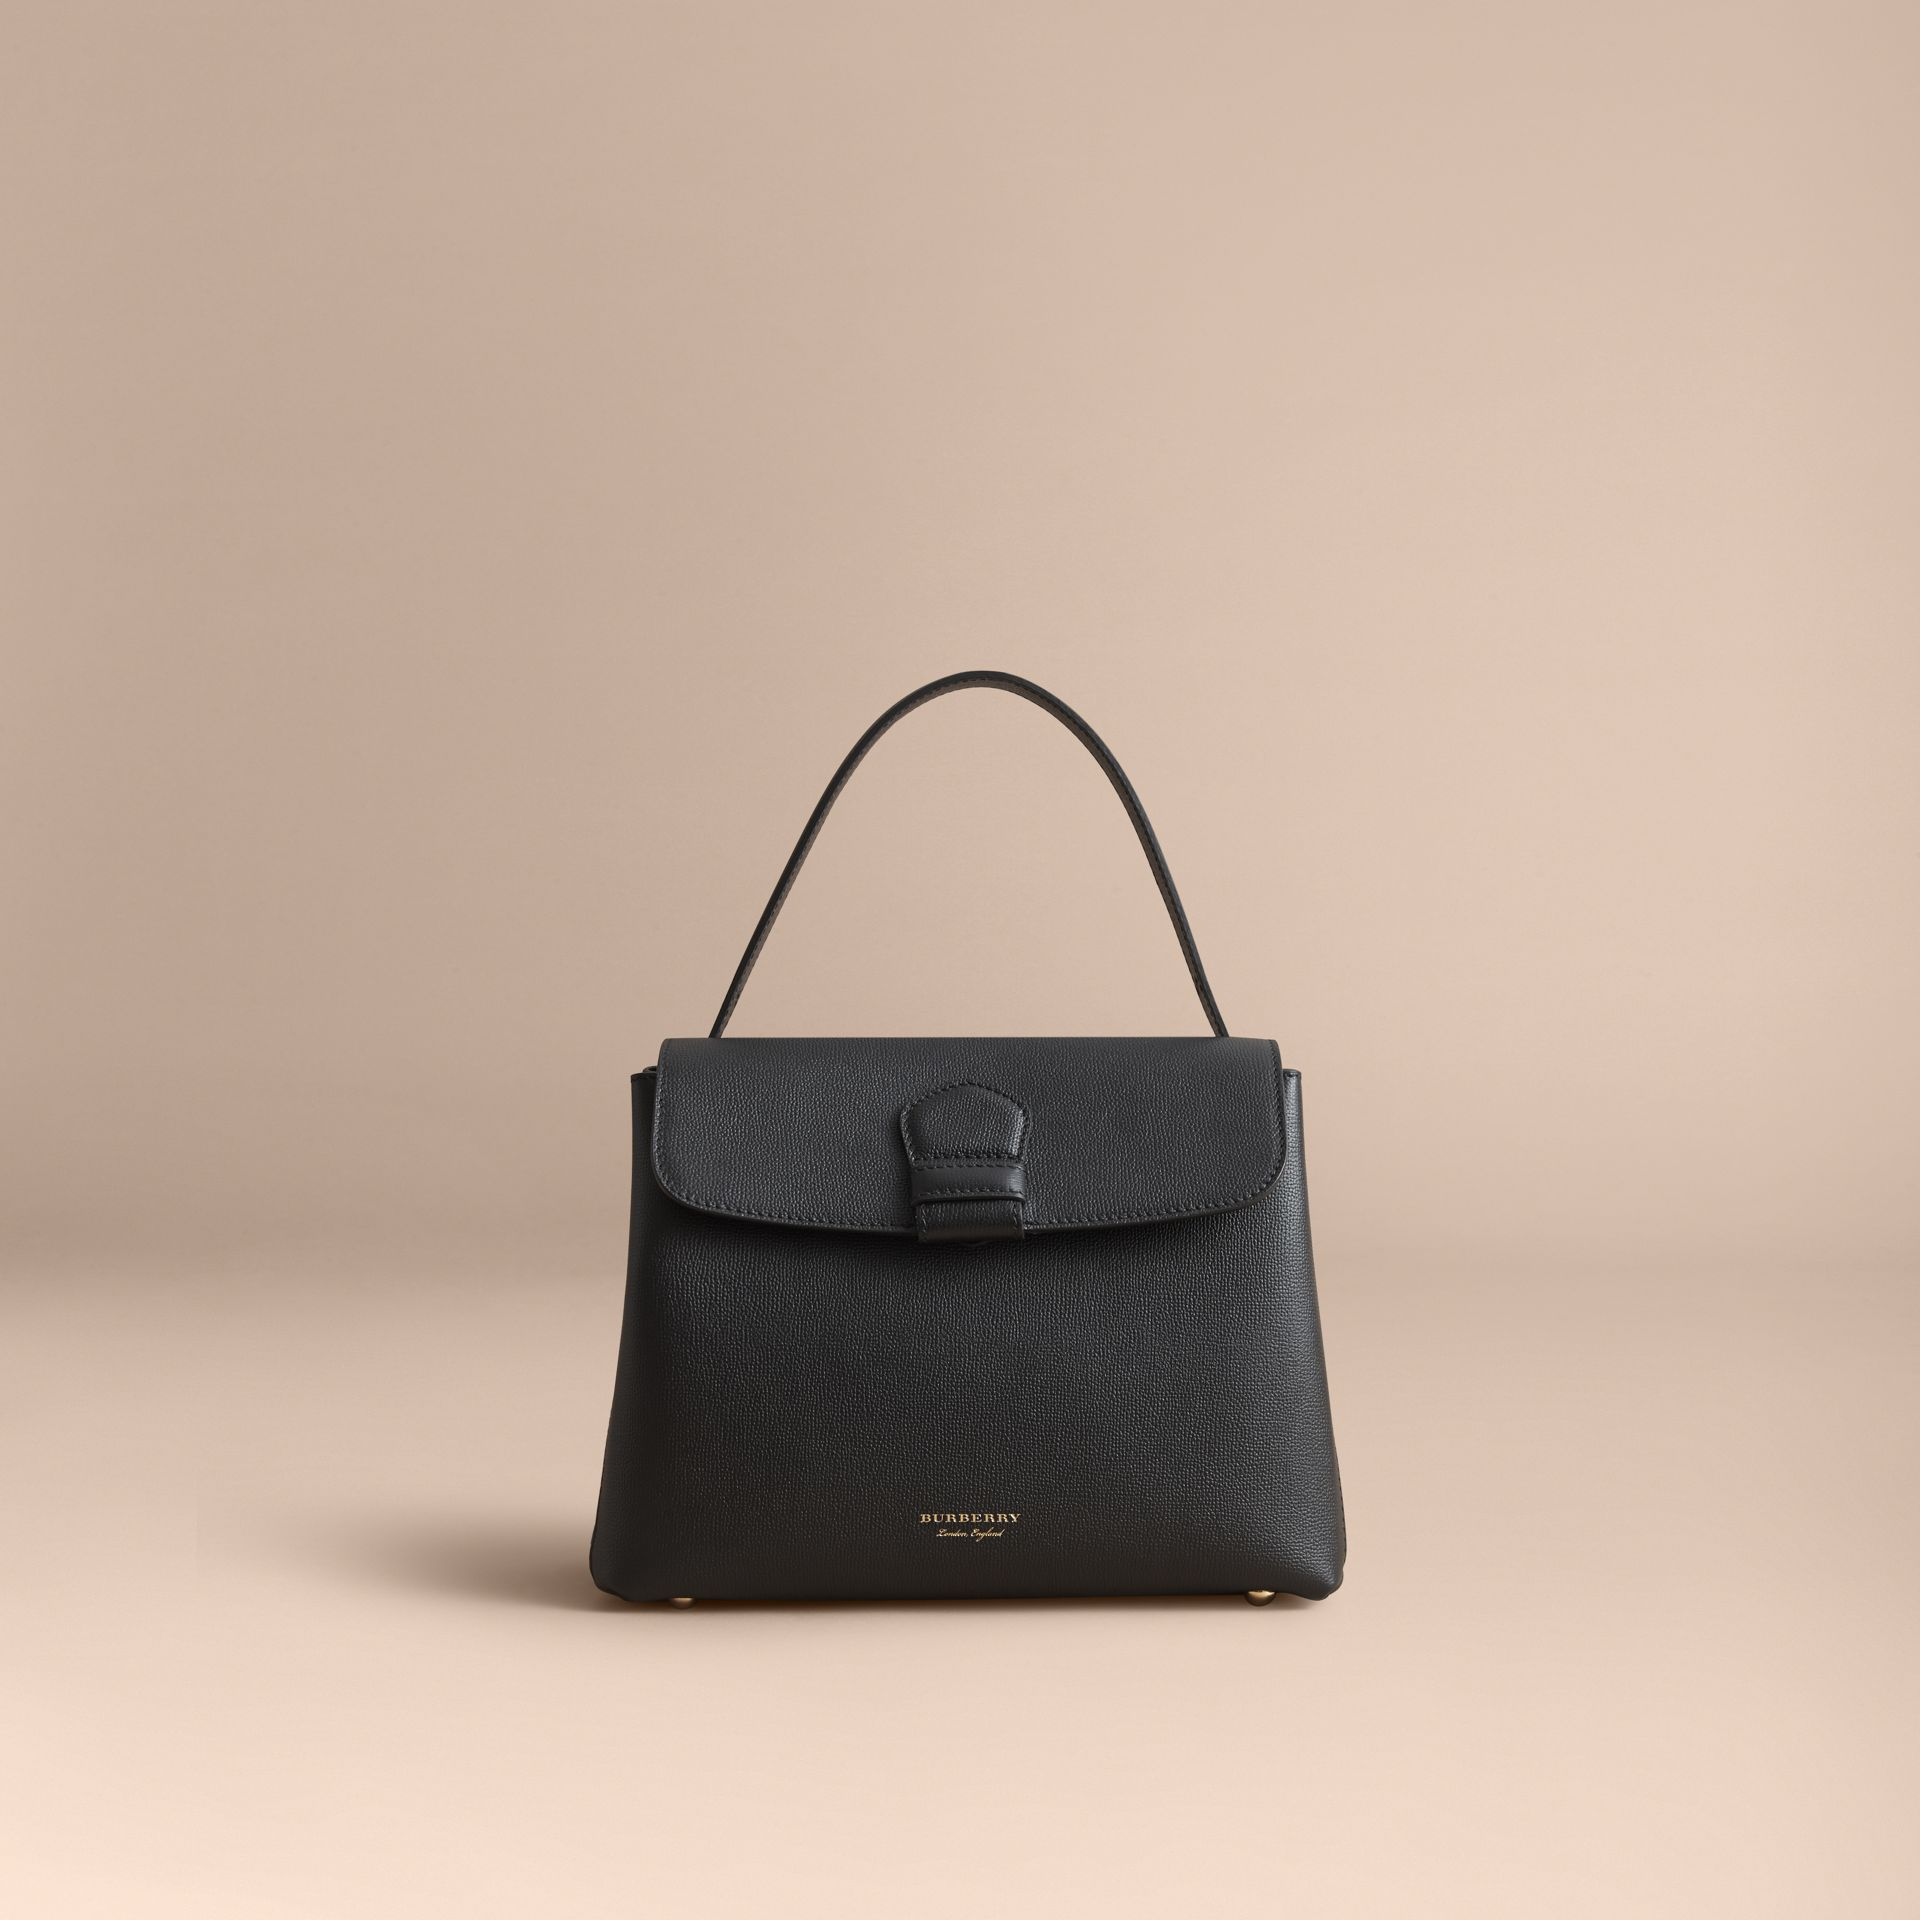 Medium Grainy Leather and House Check Tote Bag in Black - Women | Burberry - gallery image 8